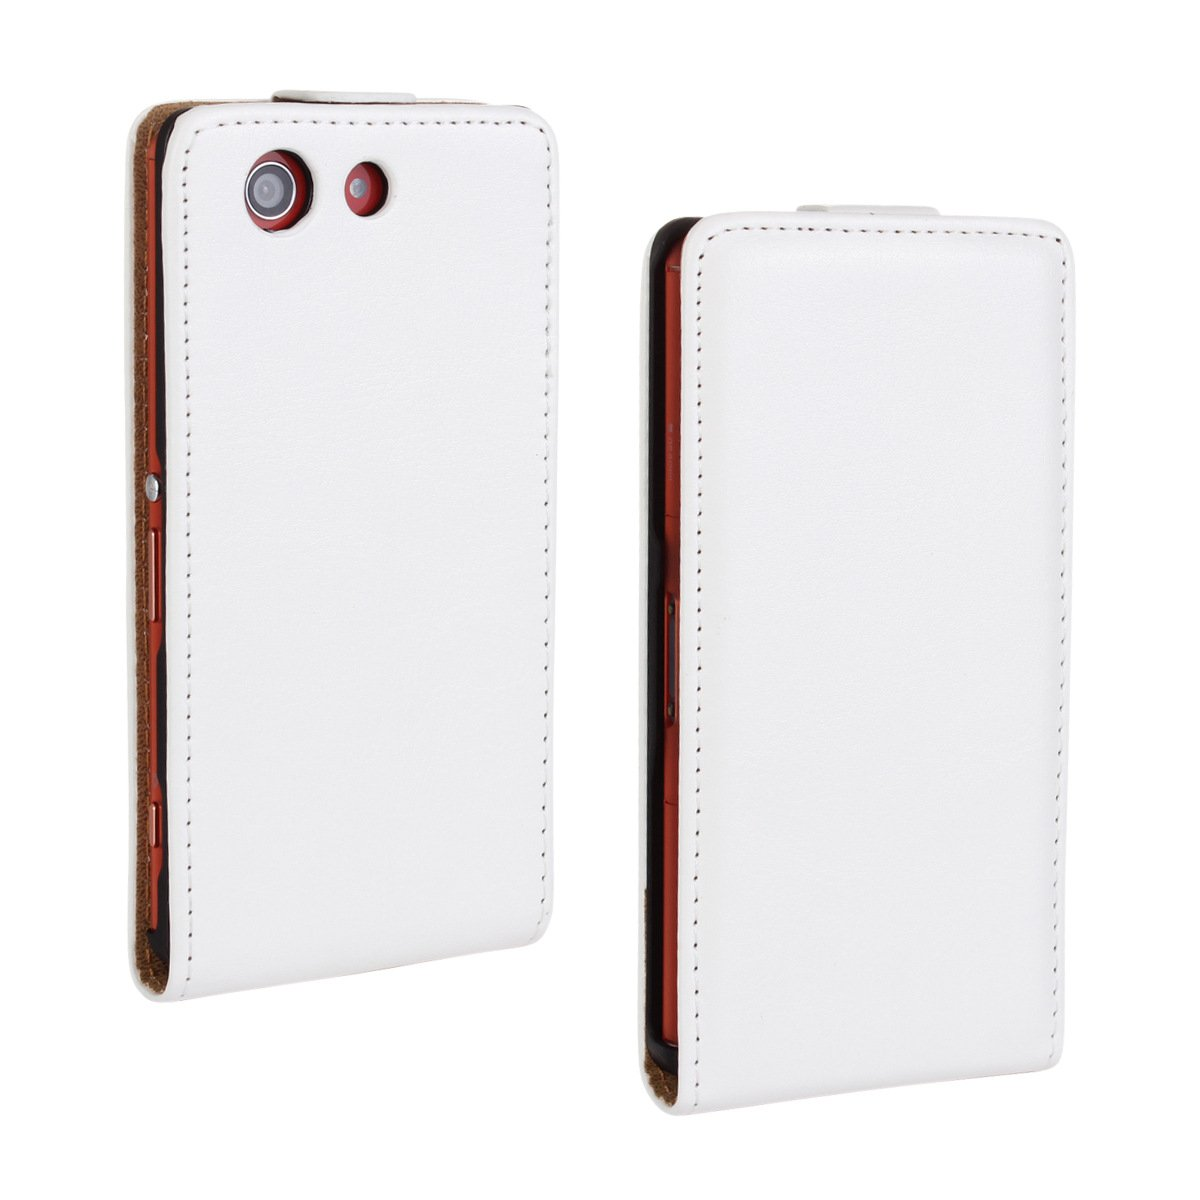 Amazon.com: for Sony Xperia St23i Flip Case Cover PU Leather ...